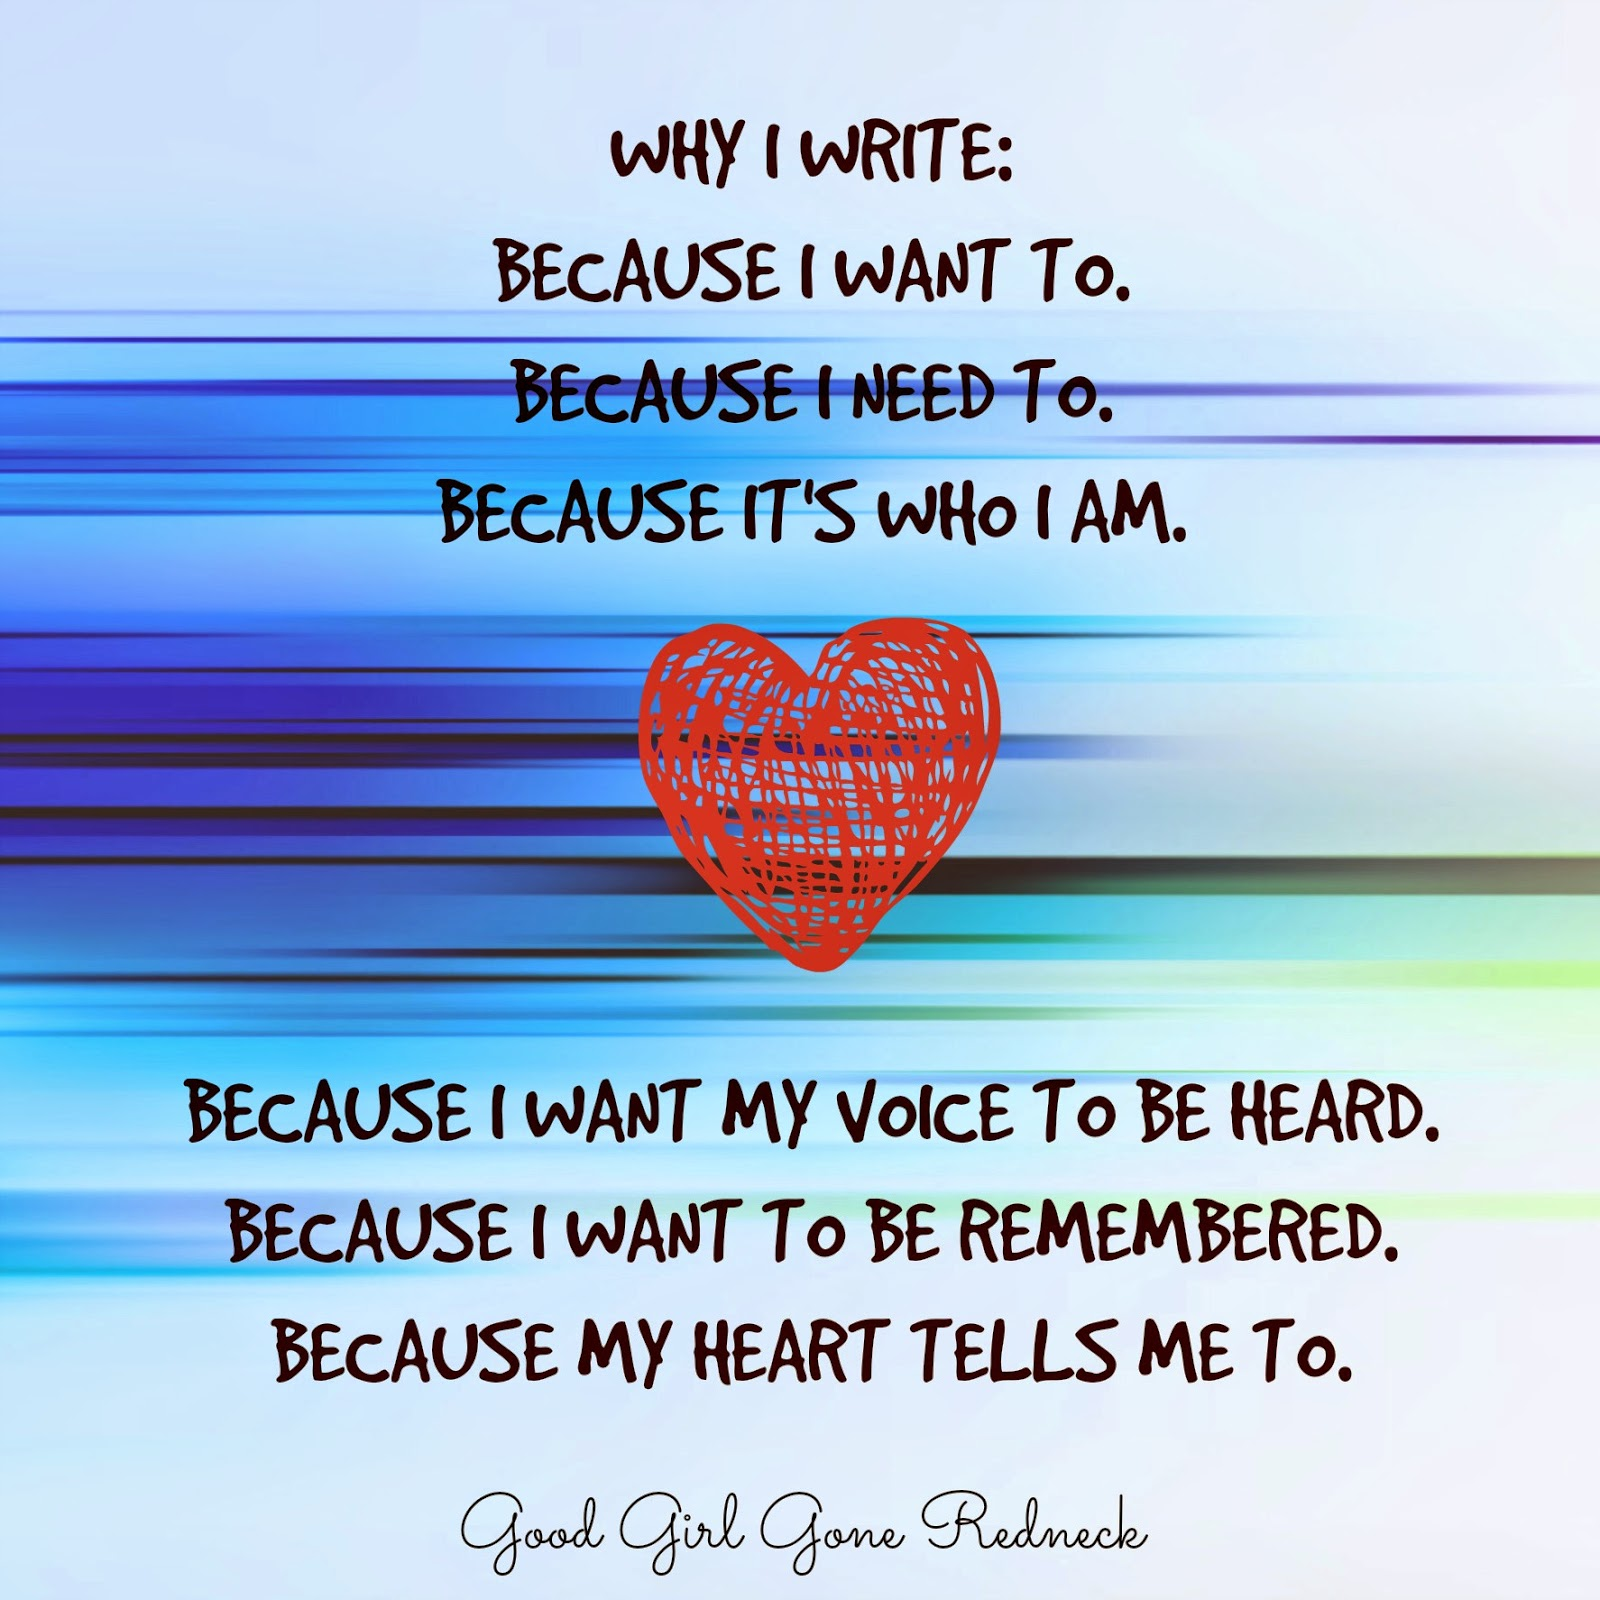 writing, heart, voice, hear me, who I am, amwriting